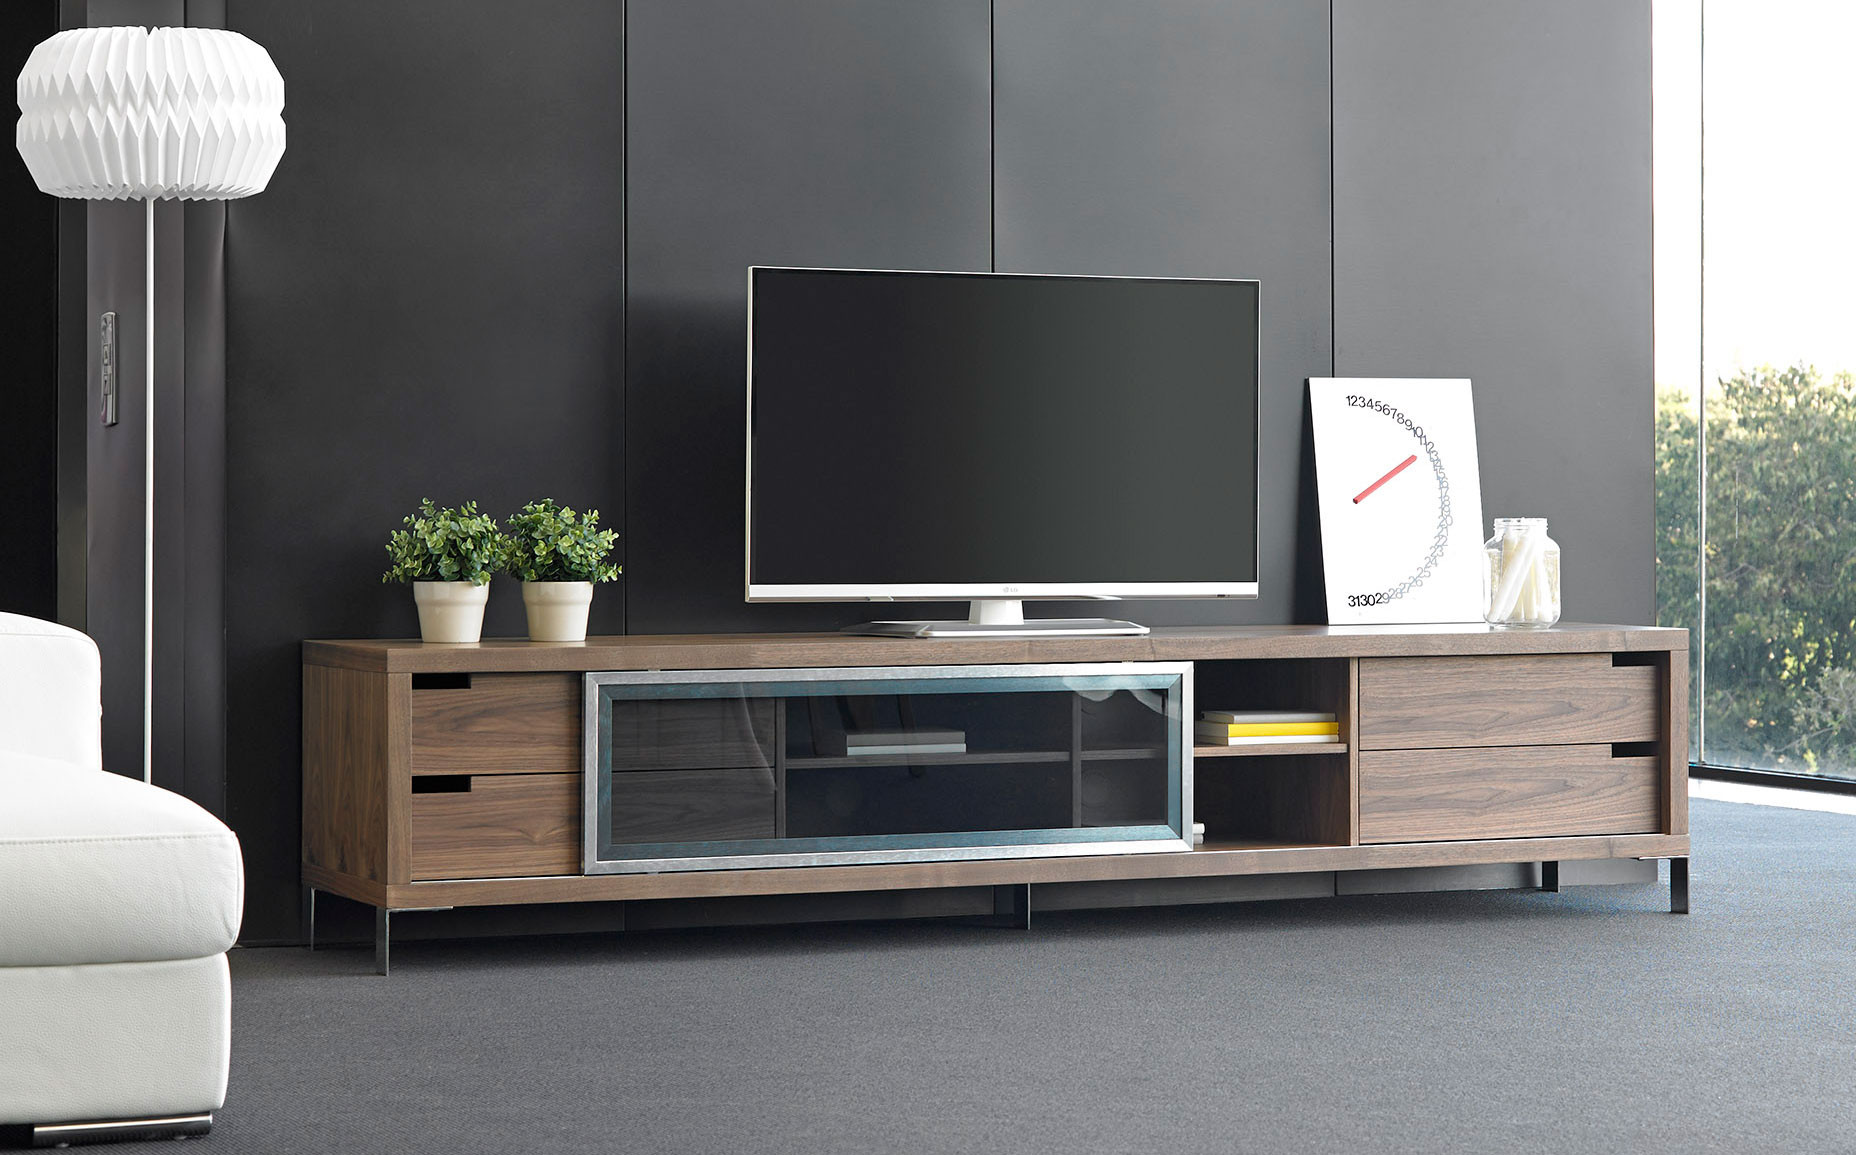 Muebles Para Tv Modernos Gran Mueble Tv Moderno Tana En Portobellostreet Of Muebles Para Tv Modernos Adorable Decore On Pinterest